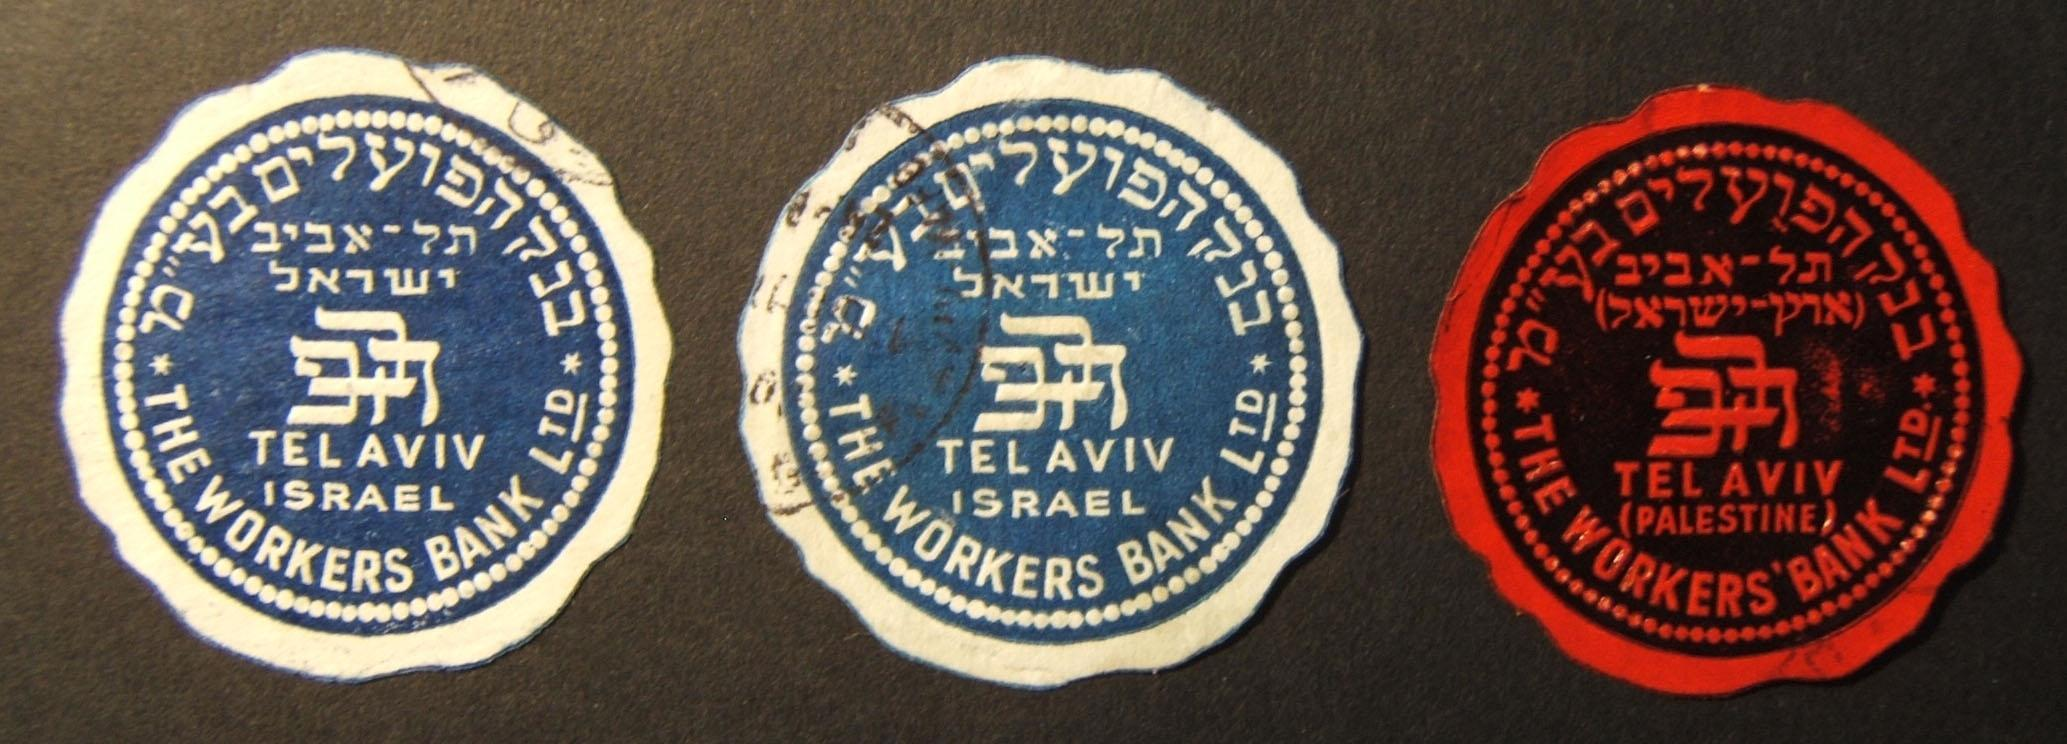 Palestine/Israel: x3 seals from Bank HaPoalim: x2 white-blue seals from State period, from Tel Aviv branch (circa. 1950s) and 1 black-red seal from Mandatory period from Tel Aviv b